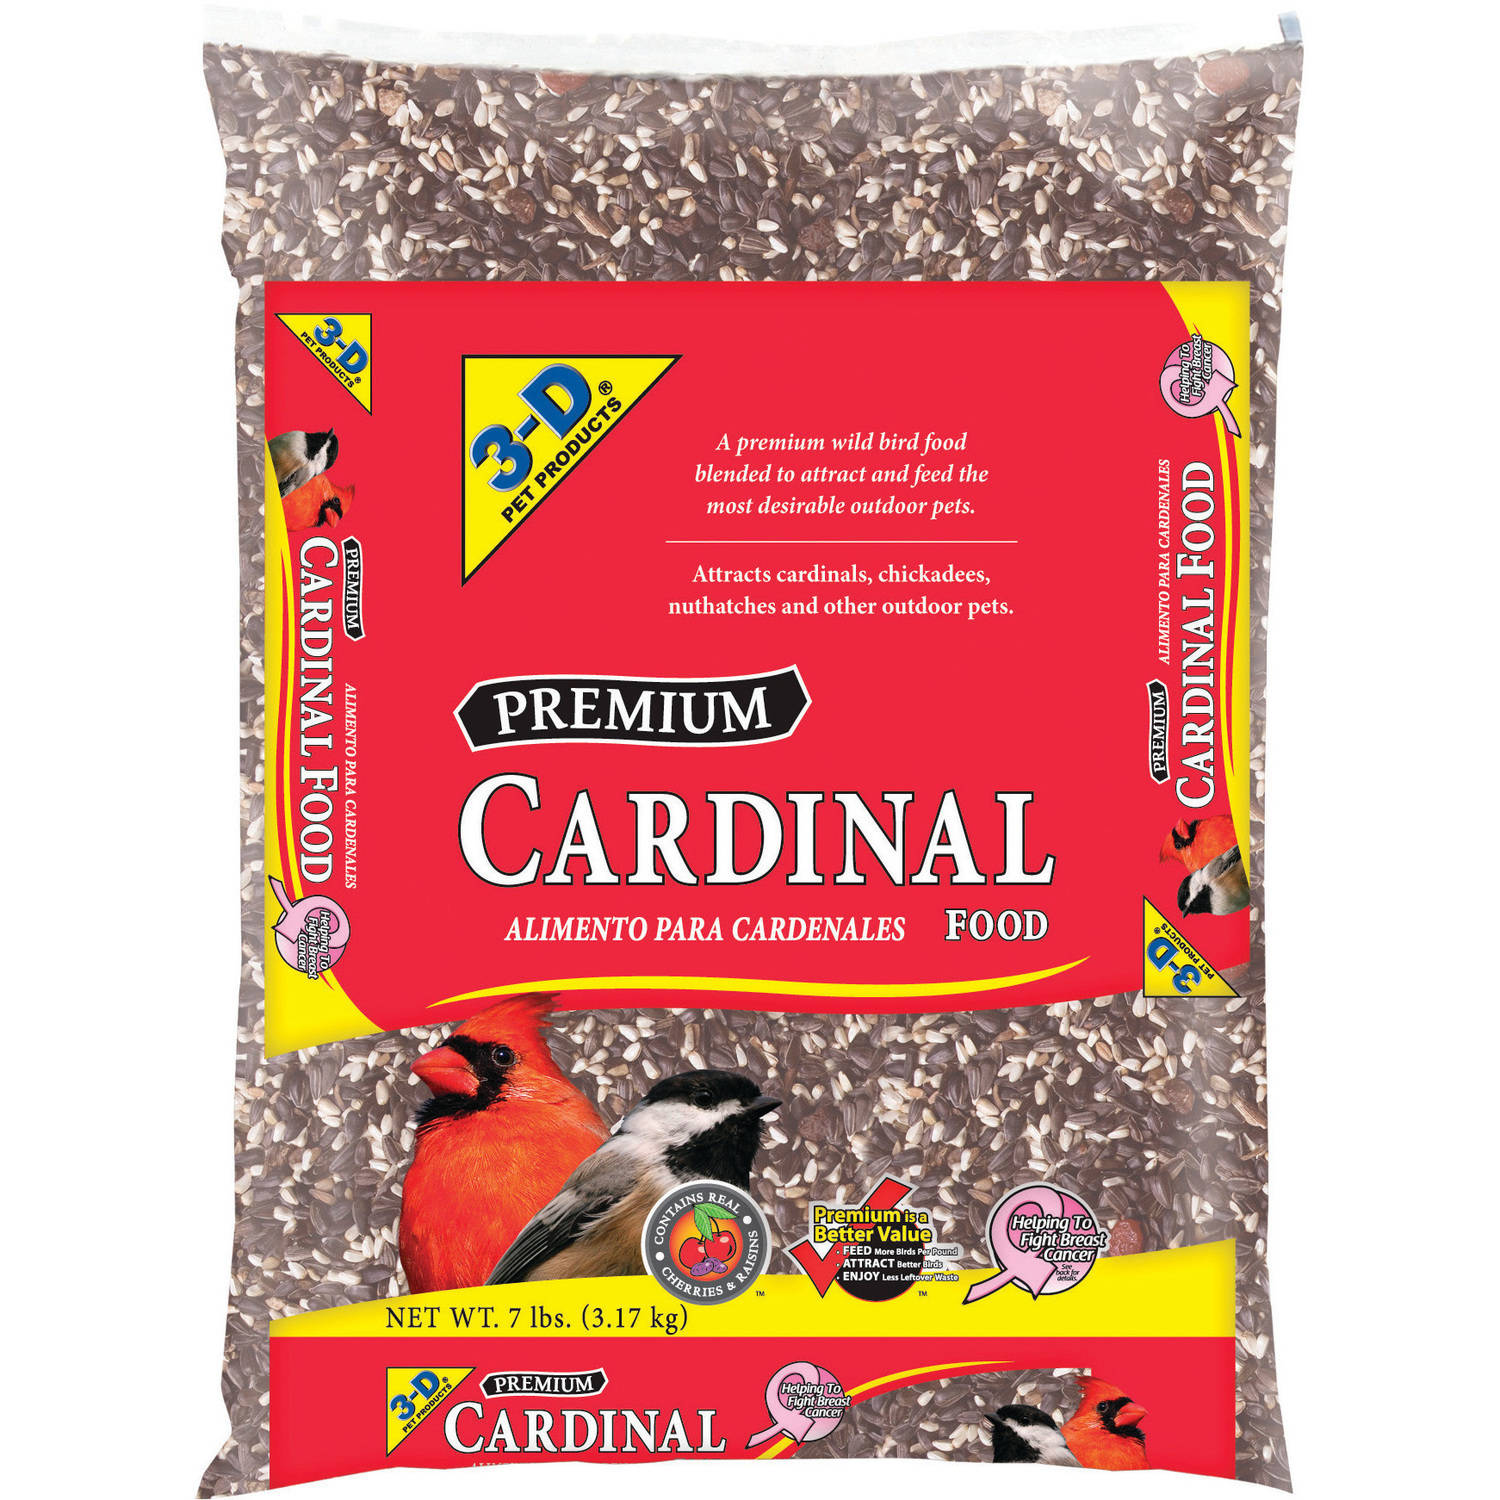 3-D Pet Products Cardinal Food, 7 Lbs by D&D Commodities Ltd.